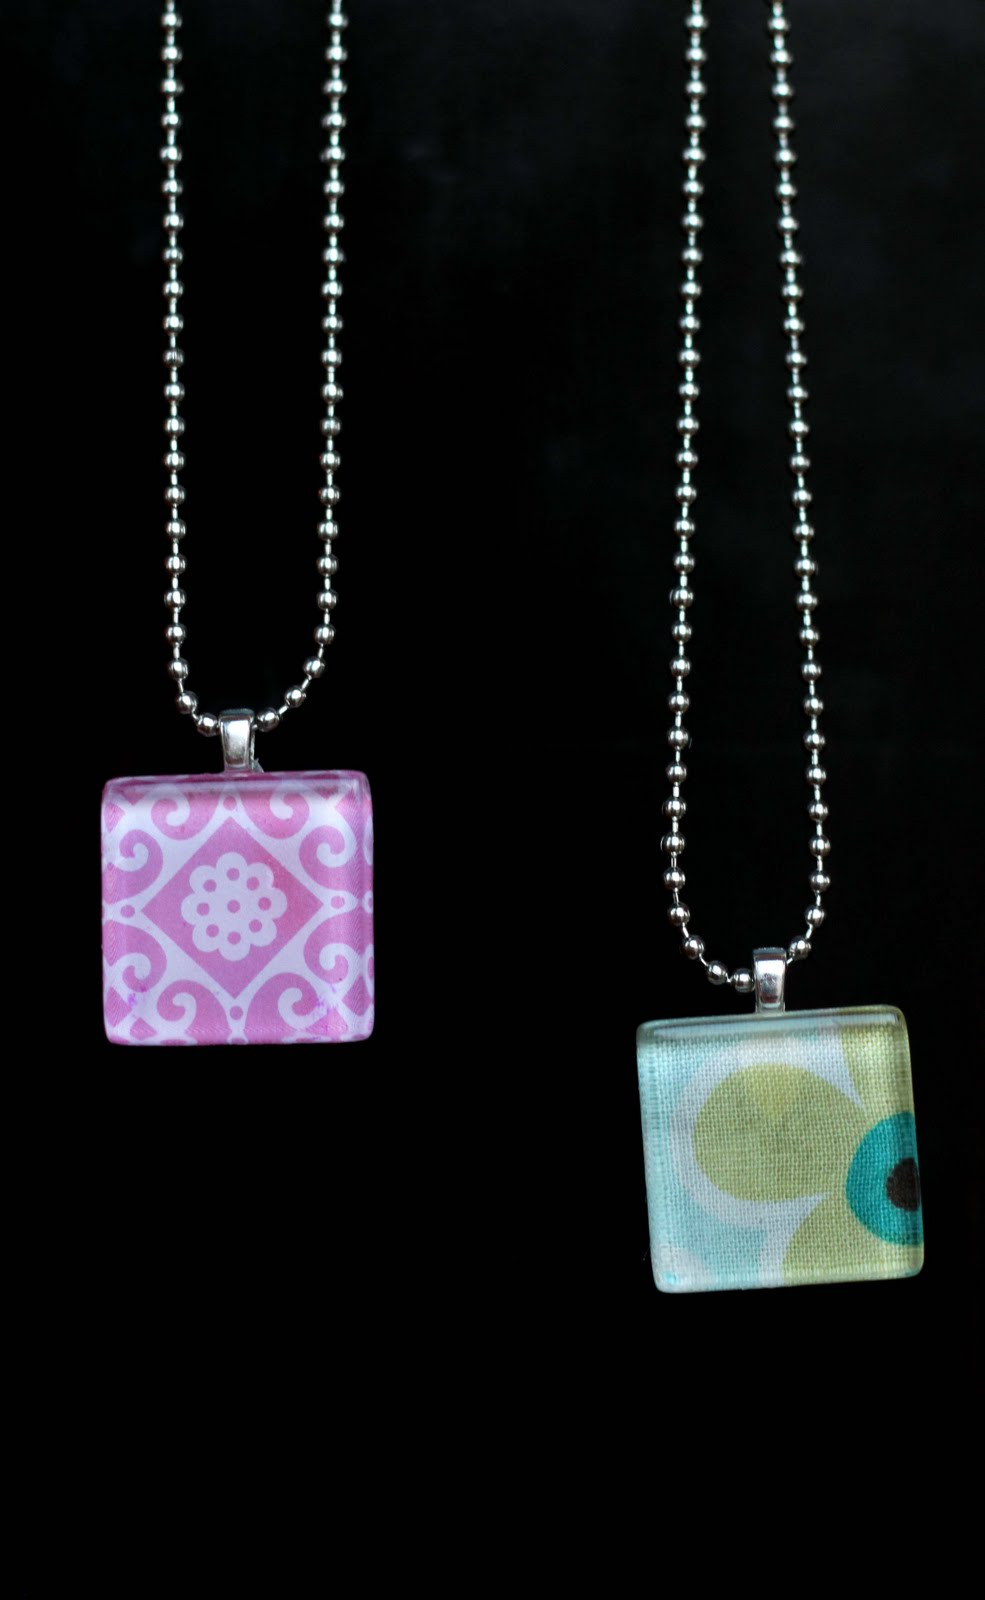 Glass tile pendants sugar bee crafts ideas for glass tile pendants aloadofball Image collections